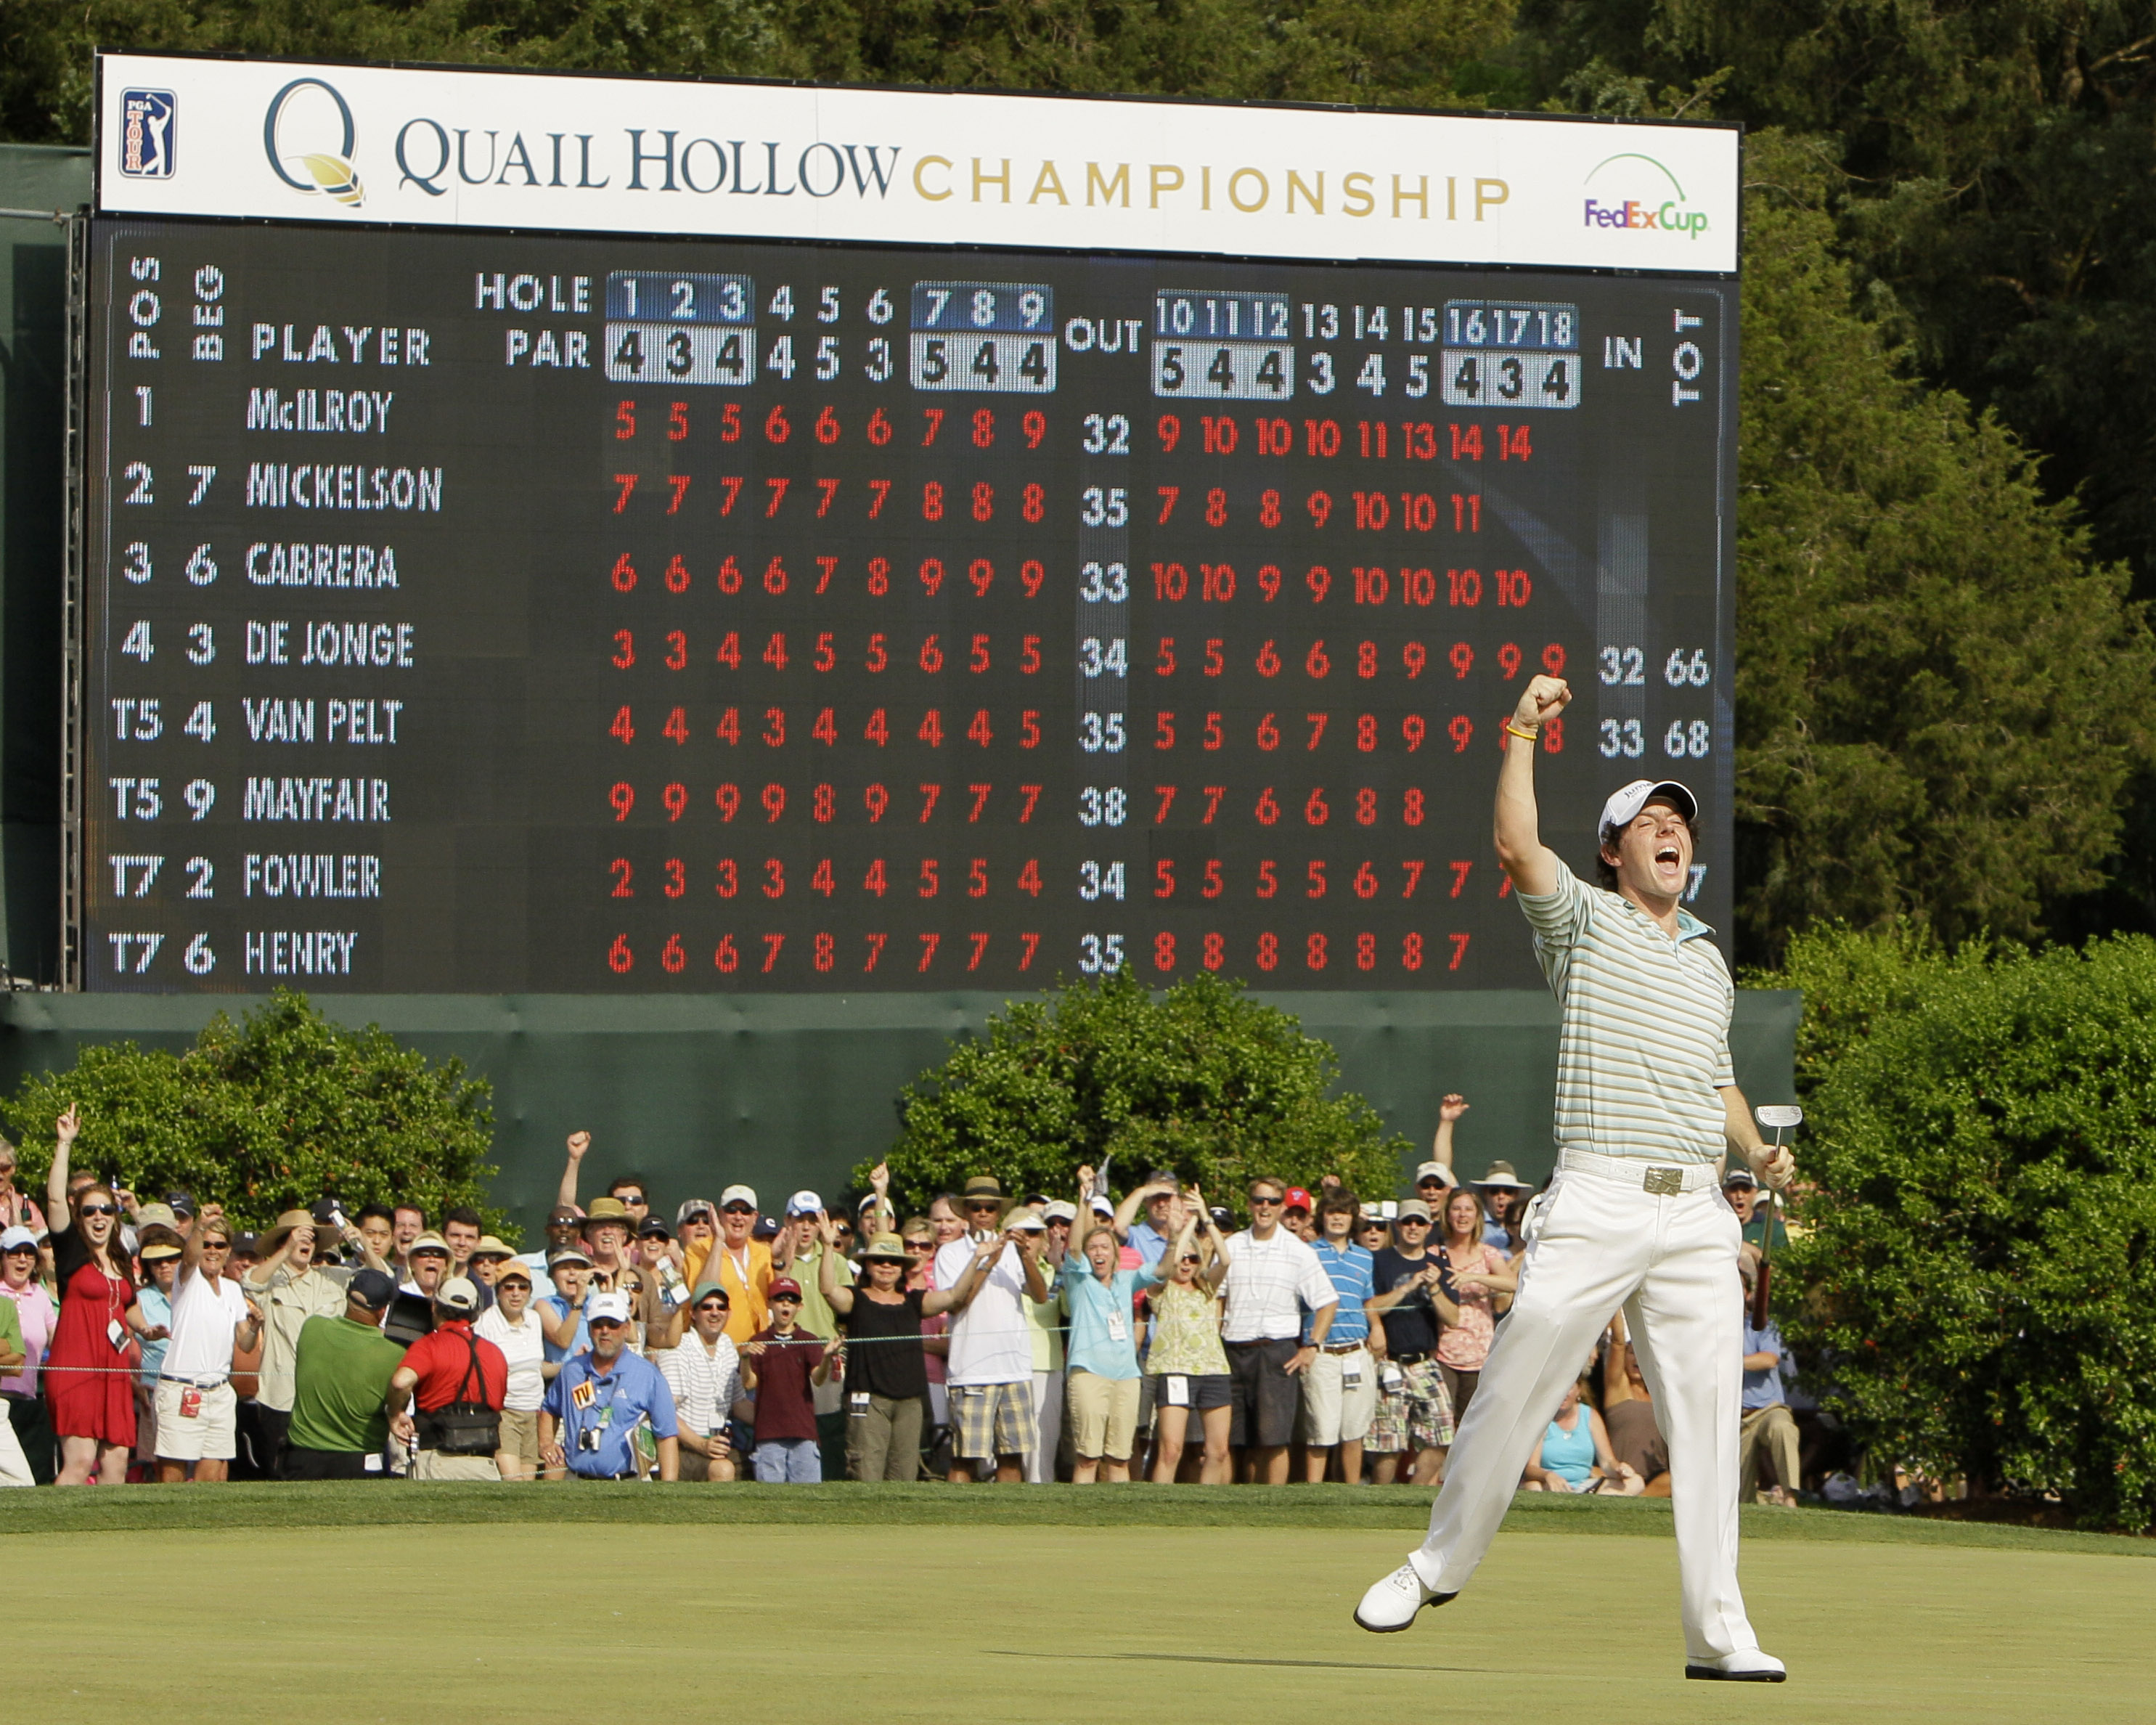 Rory McIlroy reacts after making a birdie putt on the 18th hole during the final round of the Quail Hollow Championship.